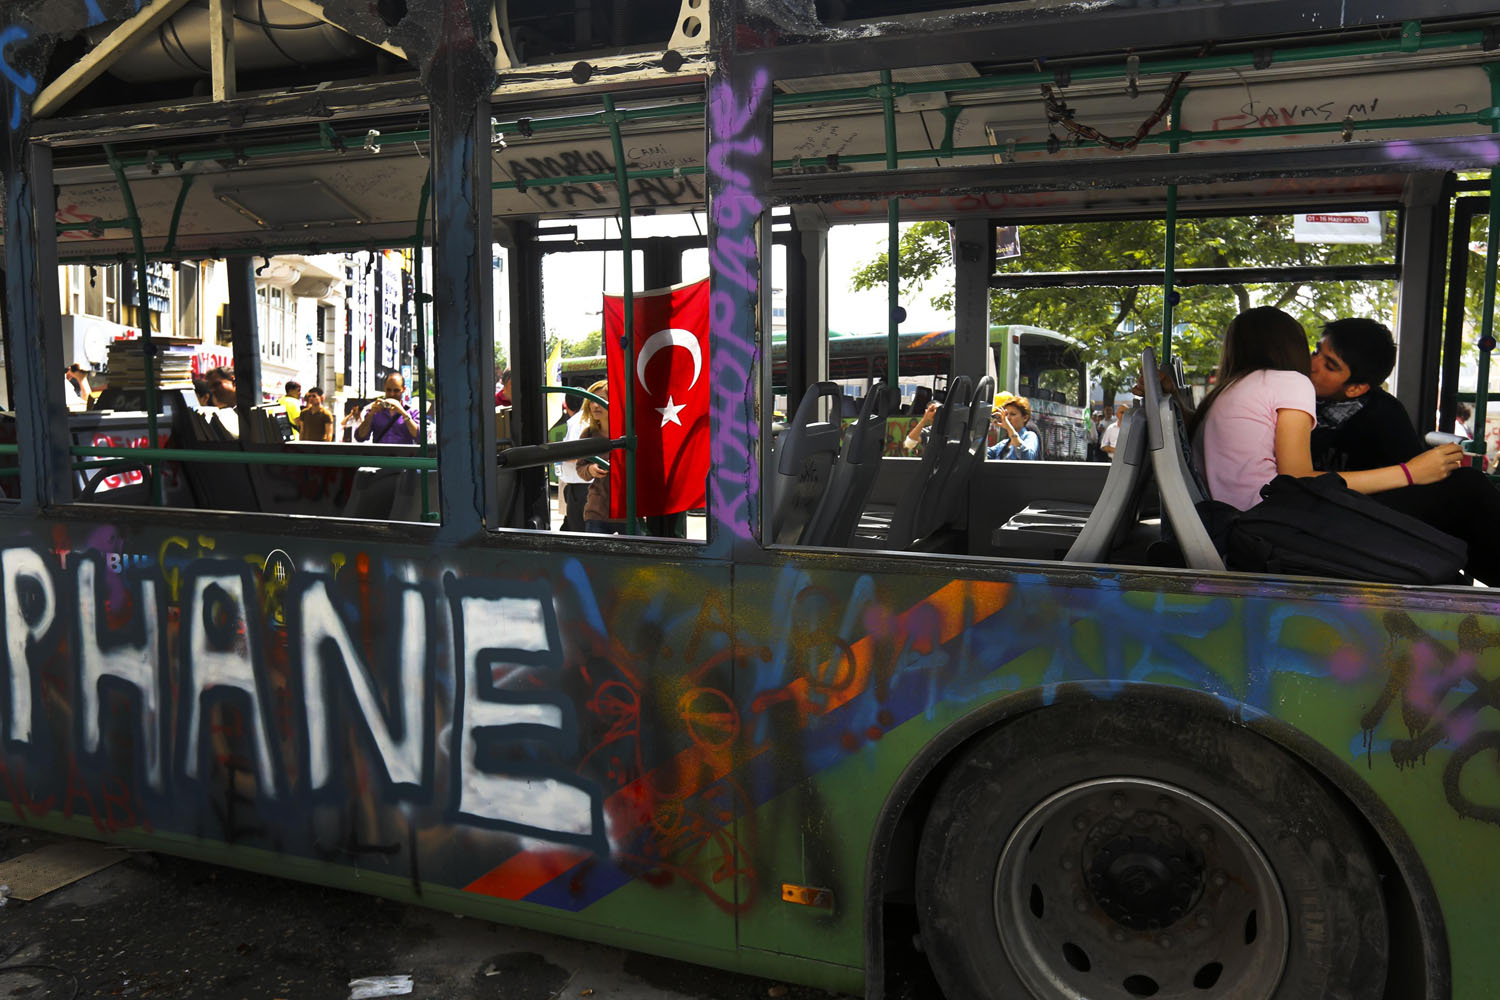 June 5, 2013. A young couple, who are anti-government protesters, kiss inside a damaged public bus, used as a barricade at Taksim Square in Istanbul.